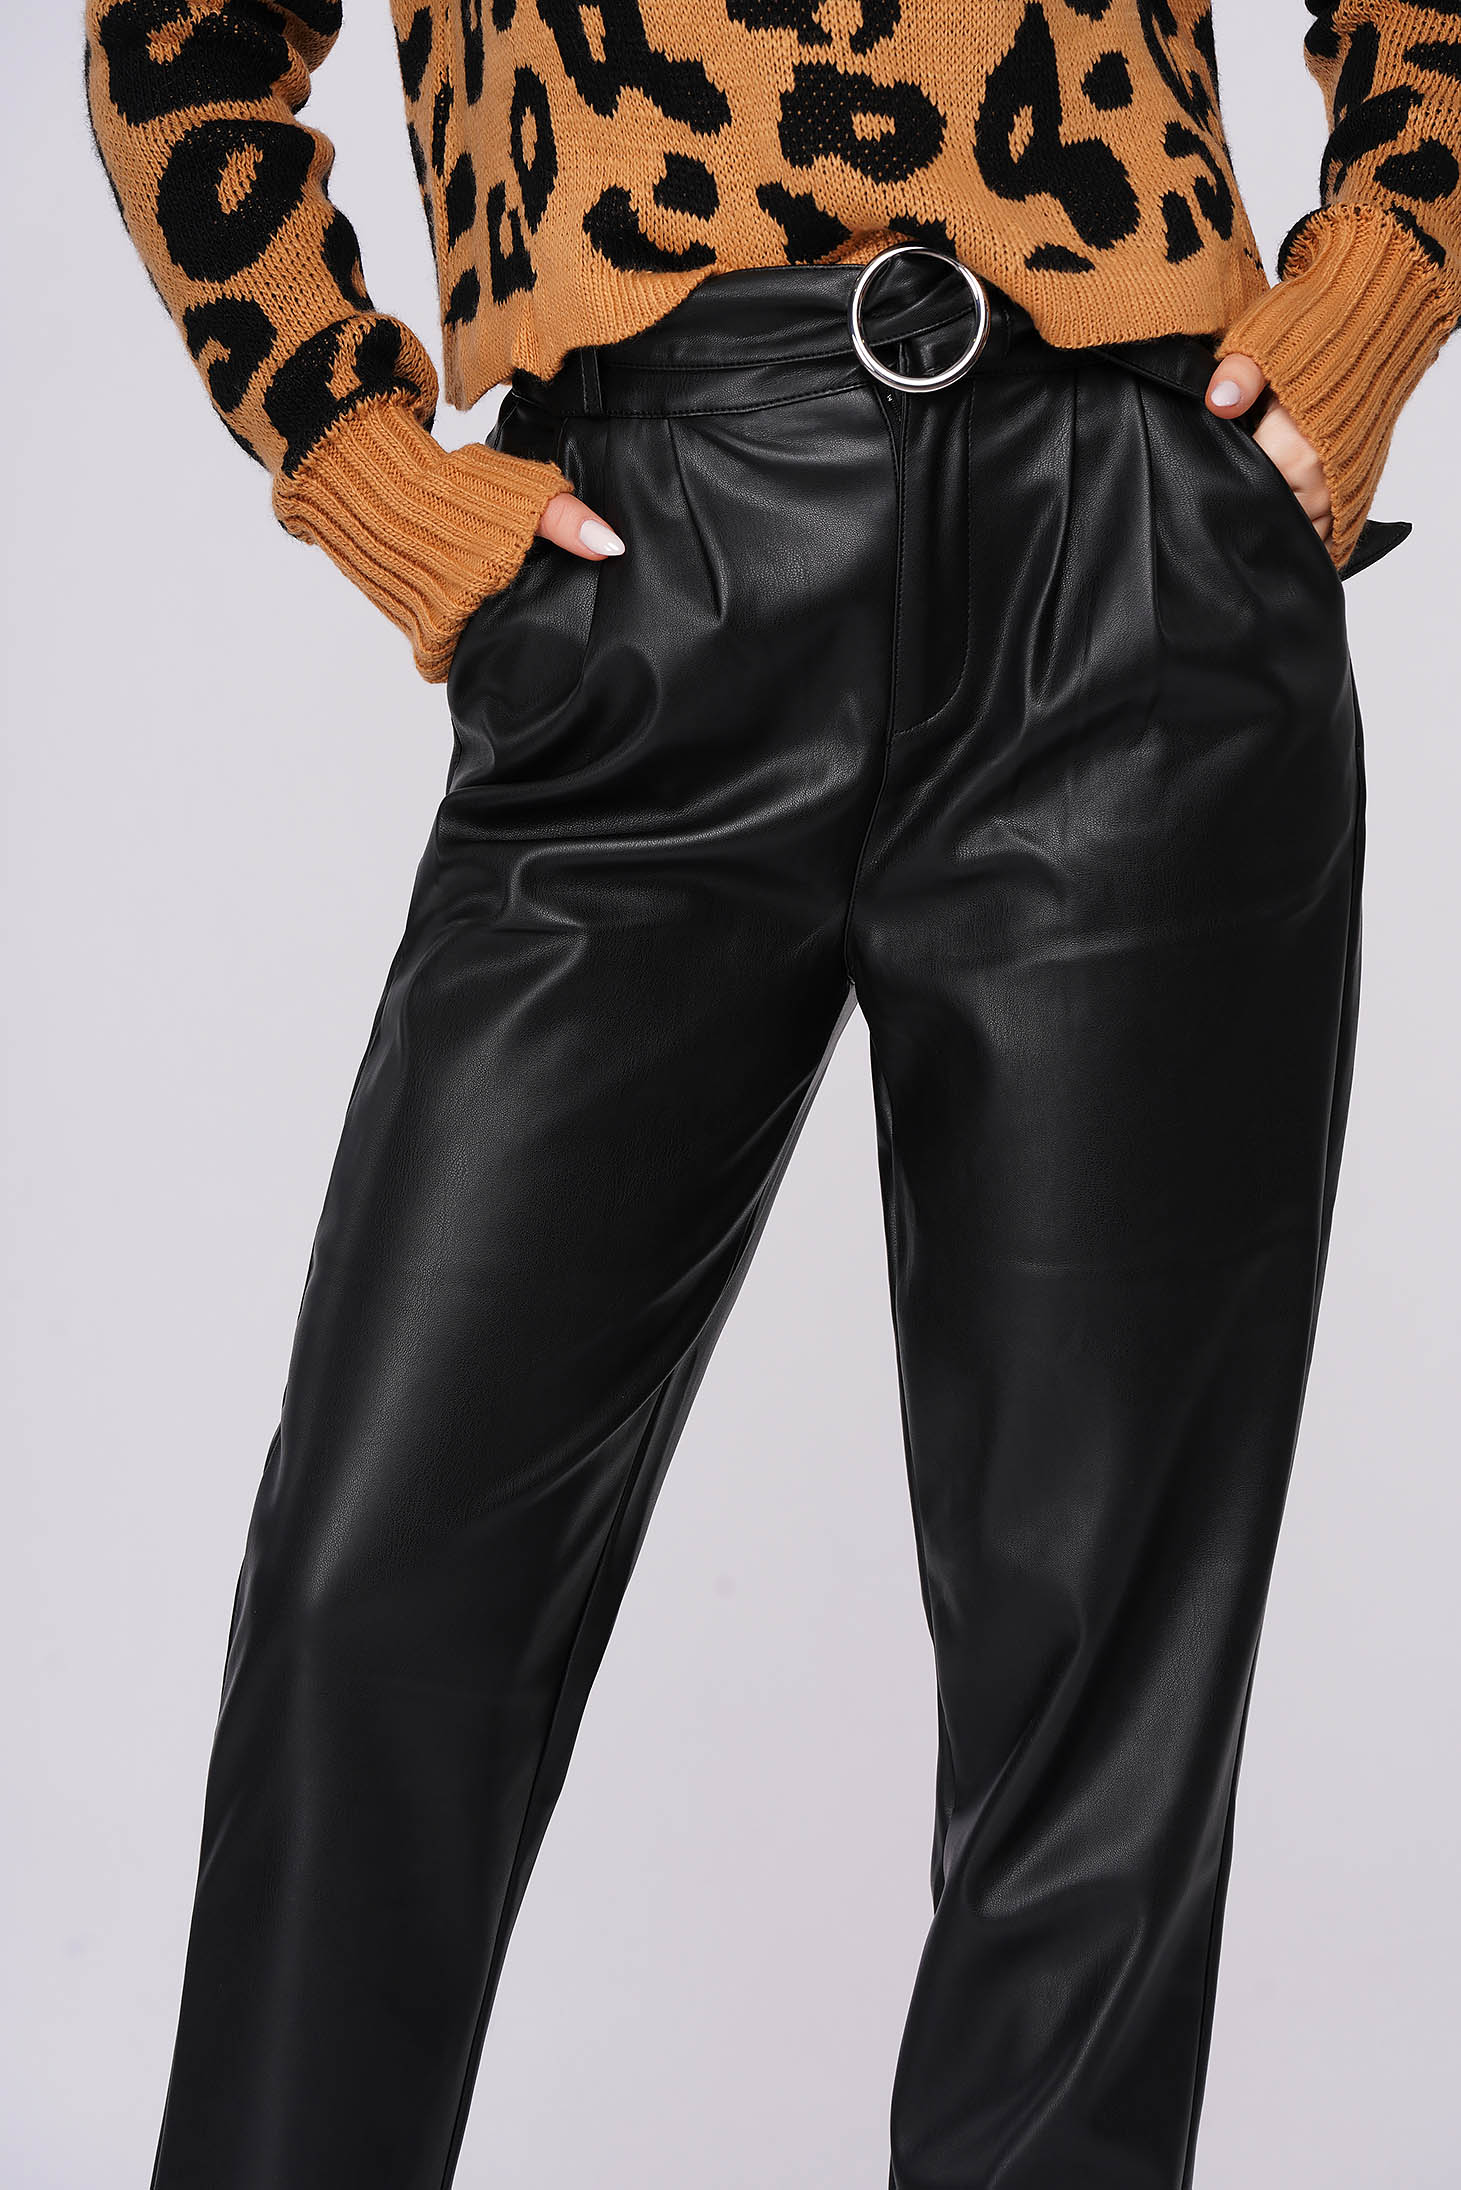 Black trousers casual high waisted faux leather accessorized with belt